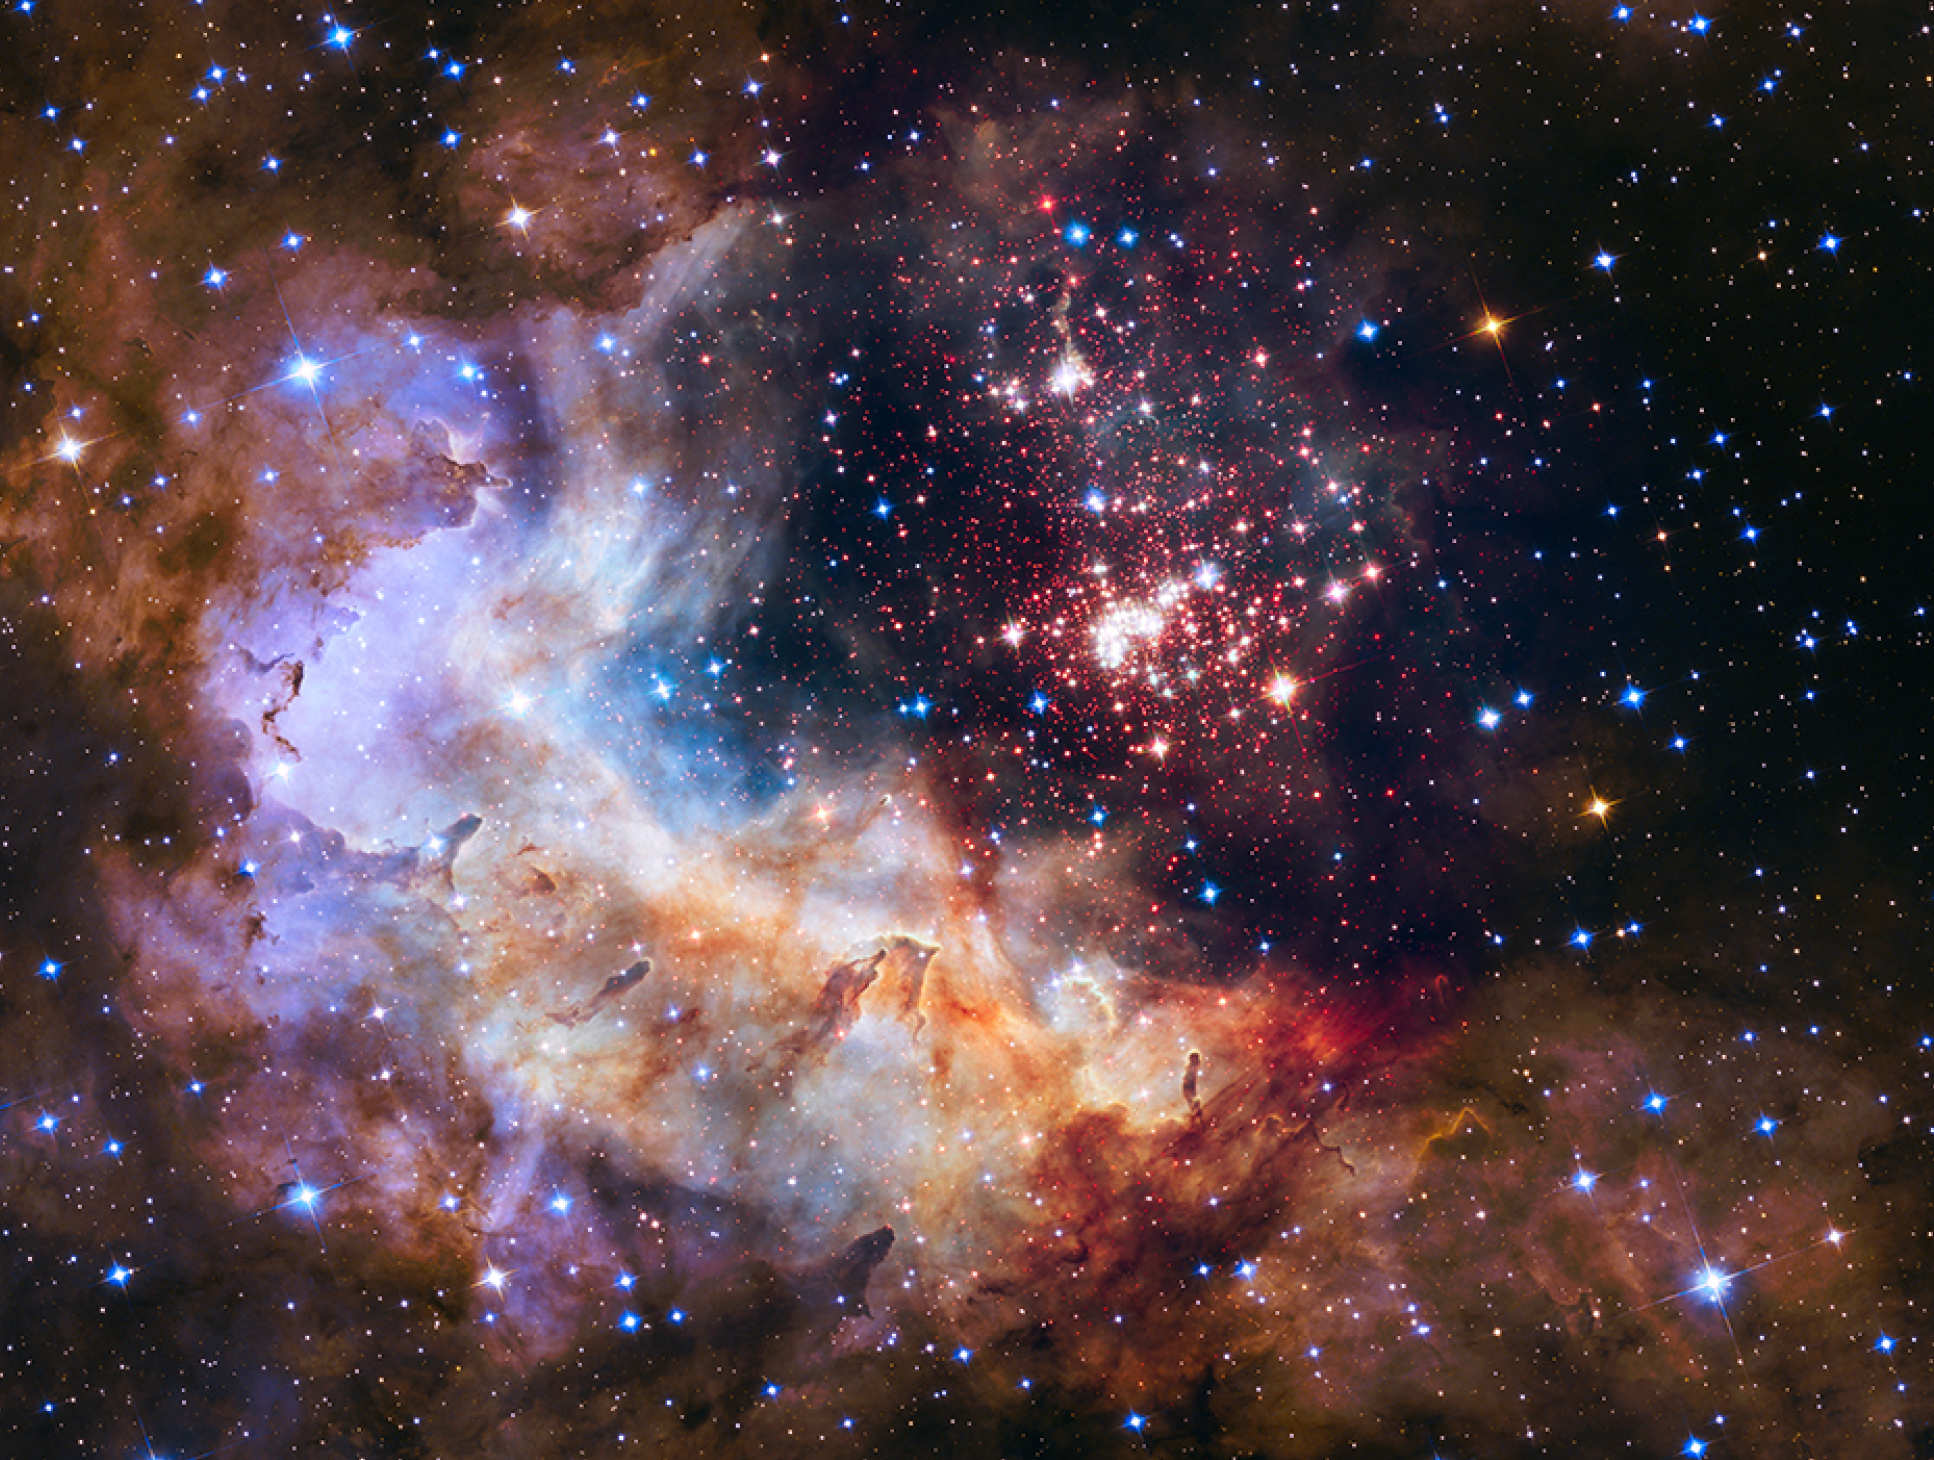 An image captured by the Hubble of Westerlund 2 - a giant a giant cluster of about 3,000 stars located 20,000 light-years away in the constellation Carina.